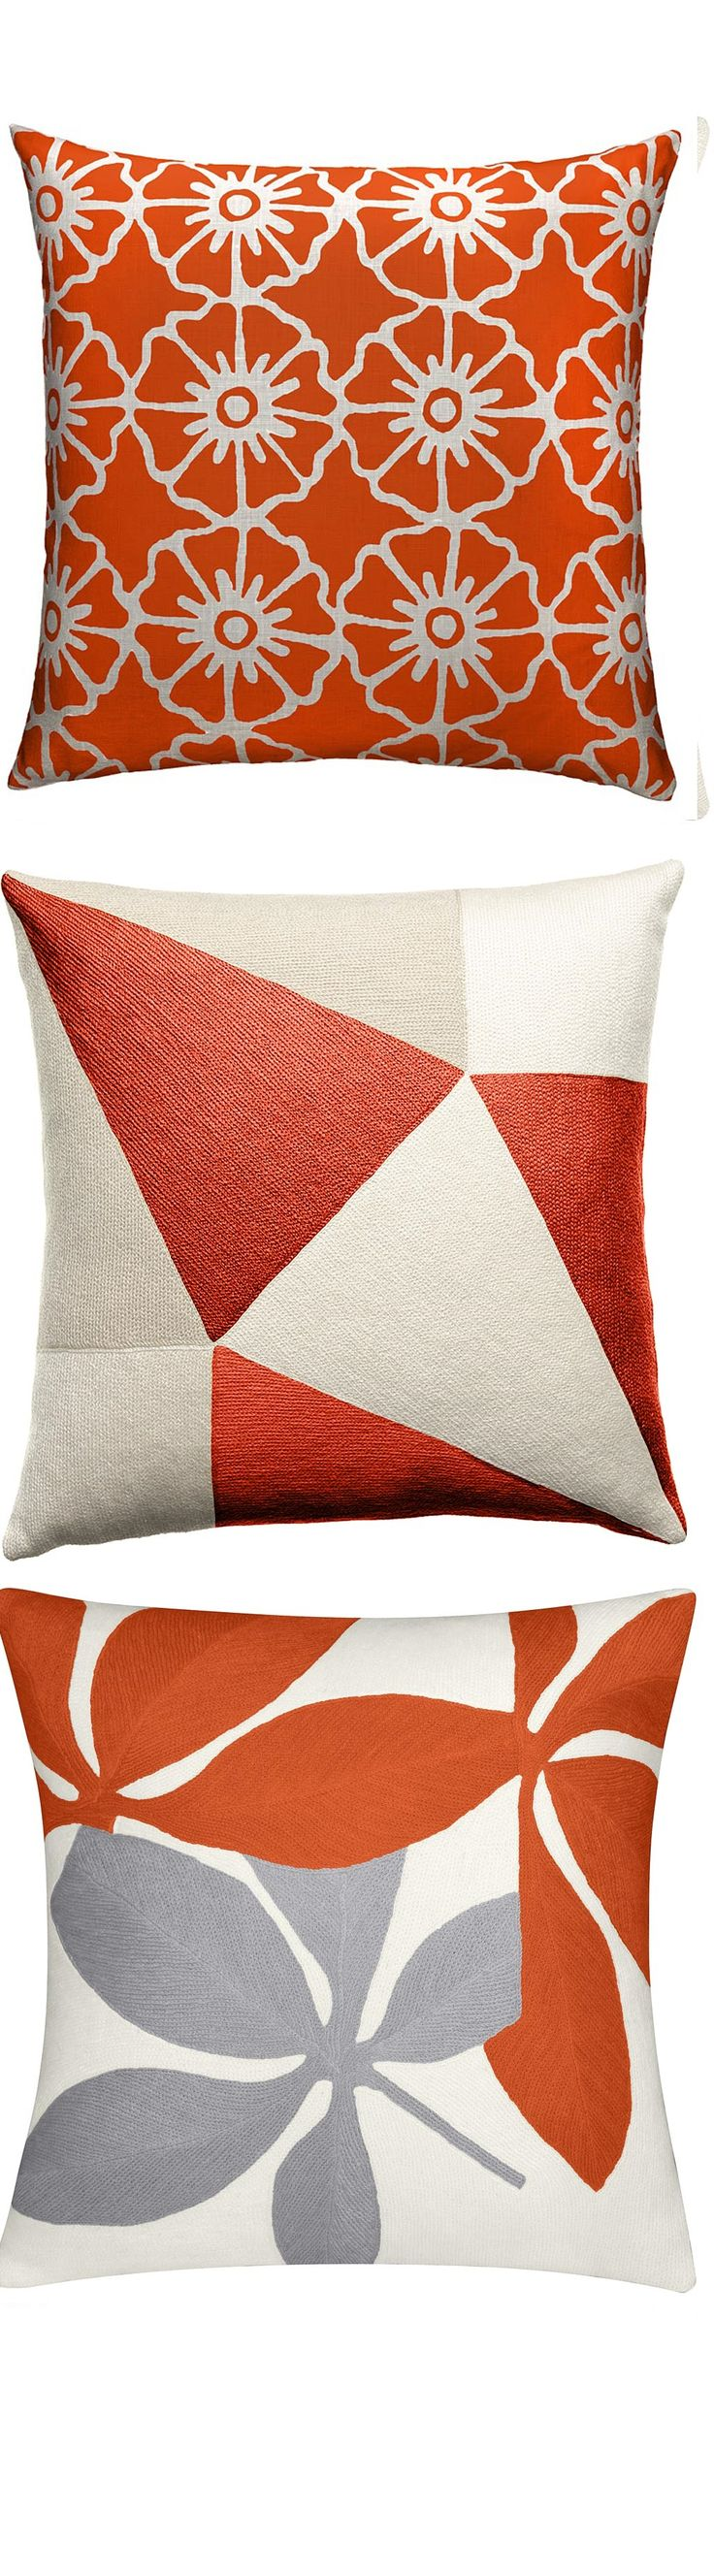 1000+ ideas about Orange Throw Pillows on Pinterest Throw Pillows, Decorative Pillows For Bed ...